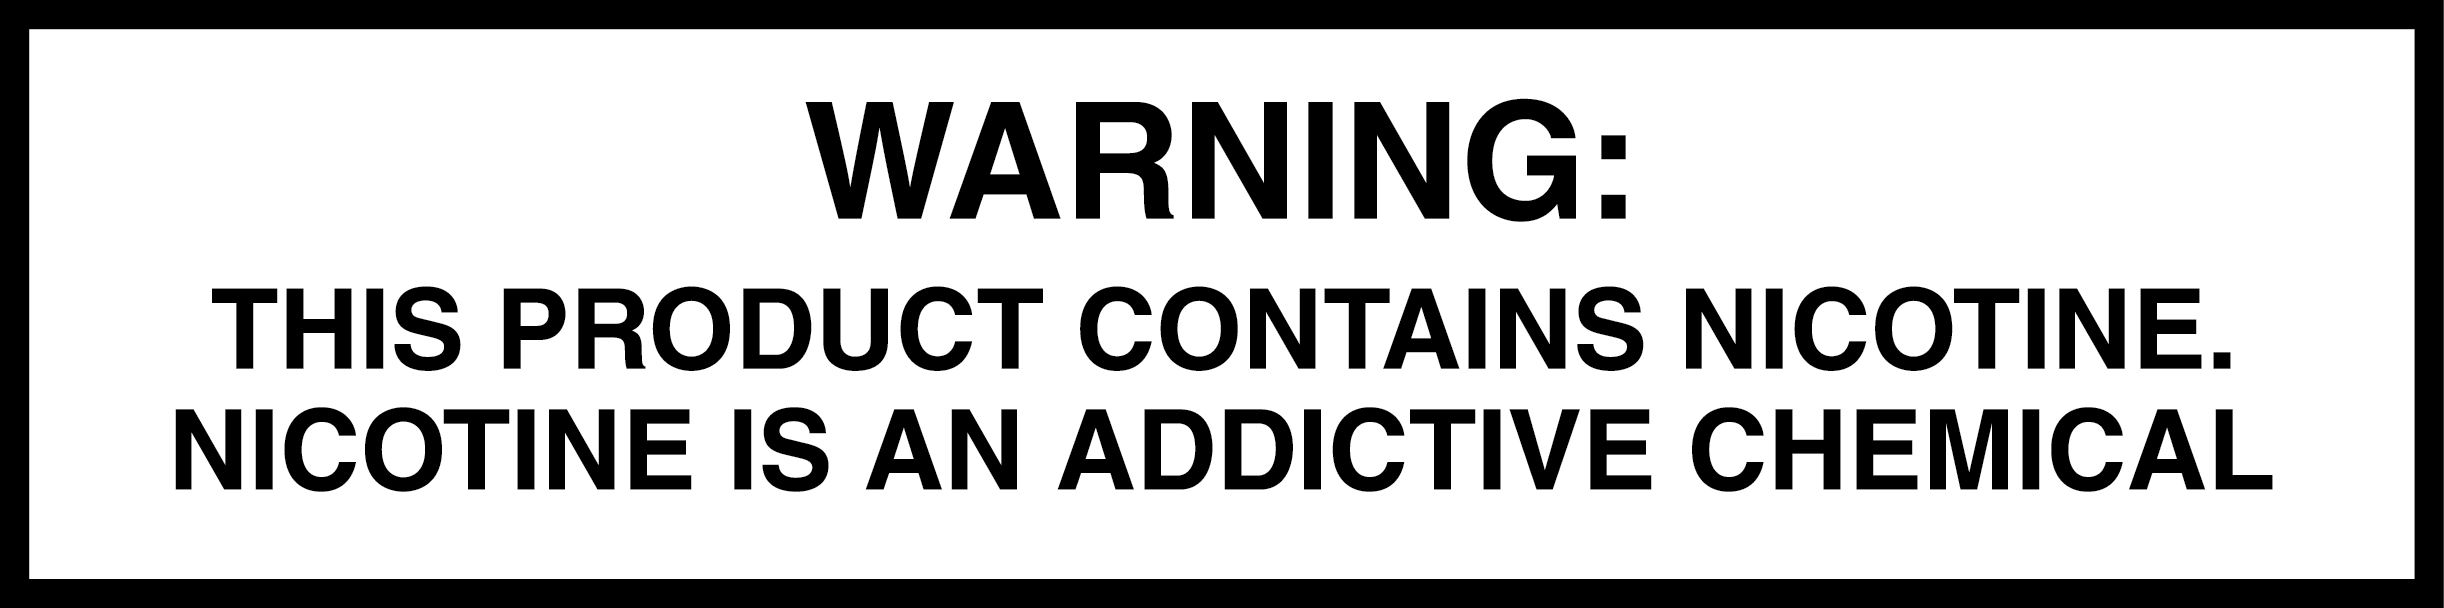 nicotine-fda-warning.jpg